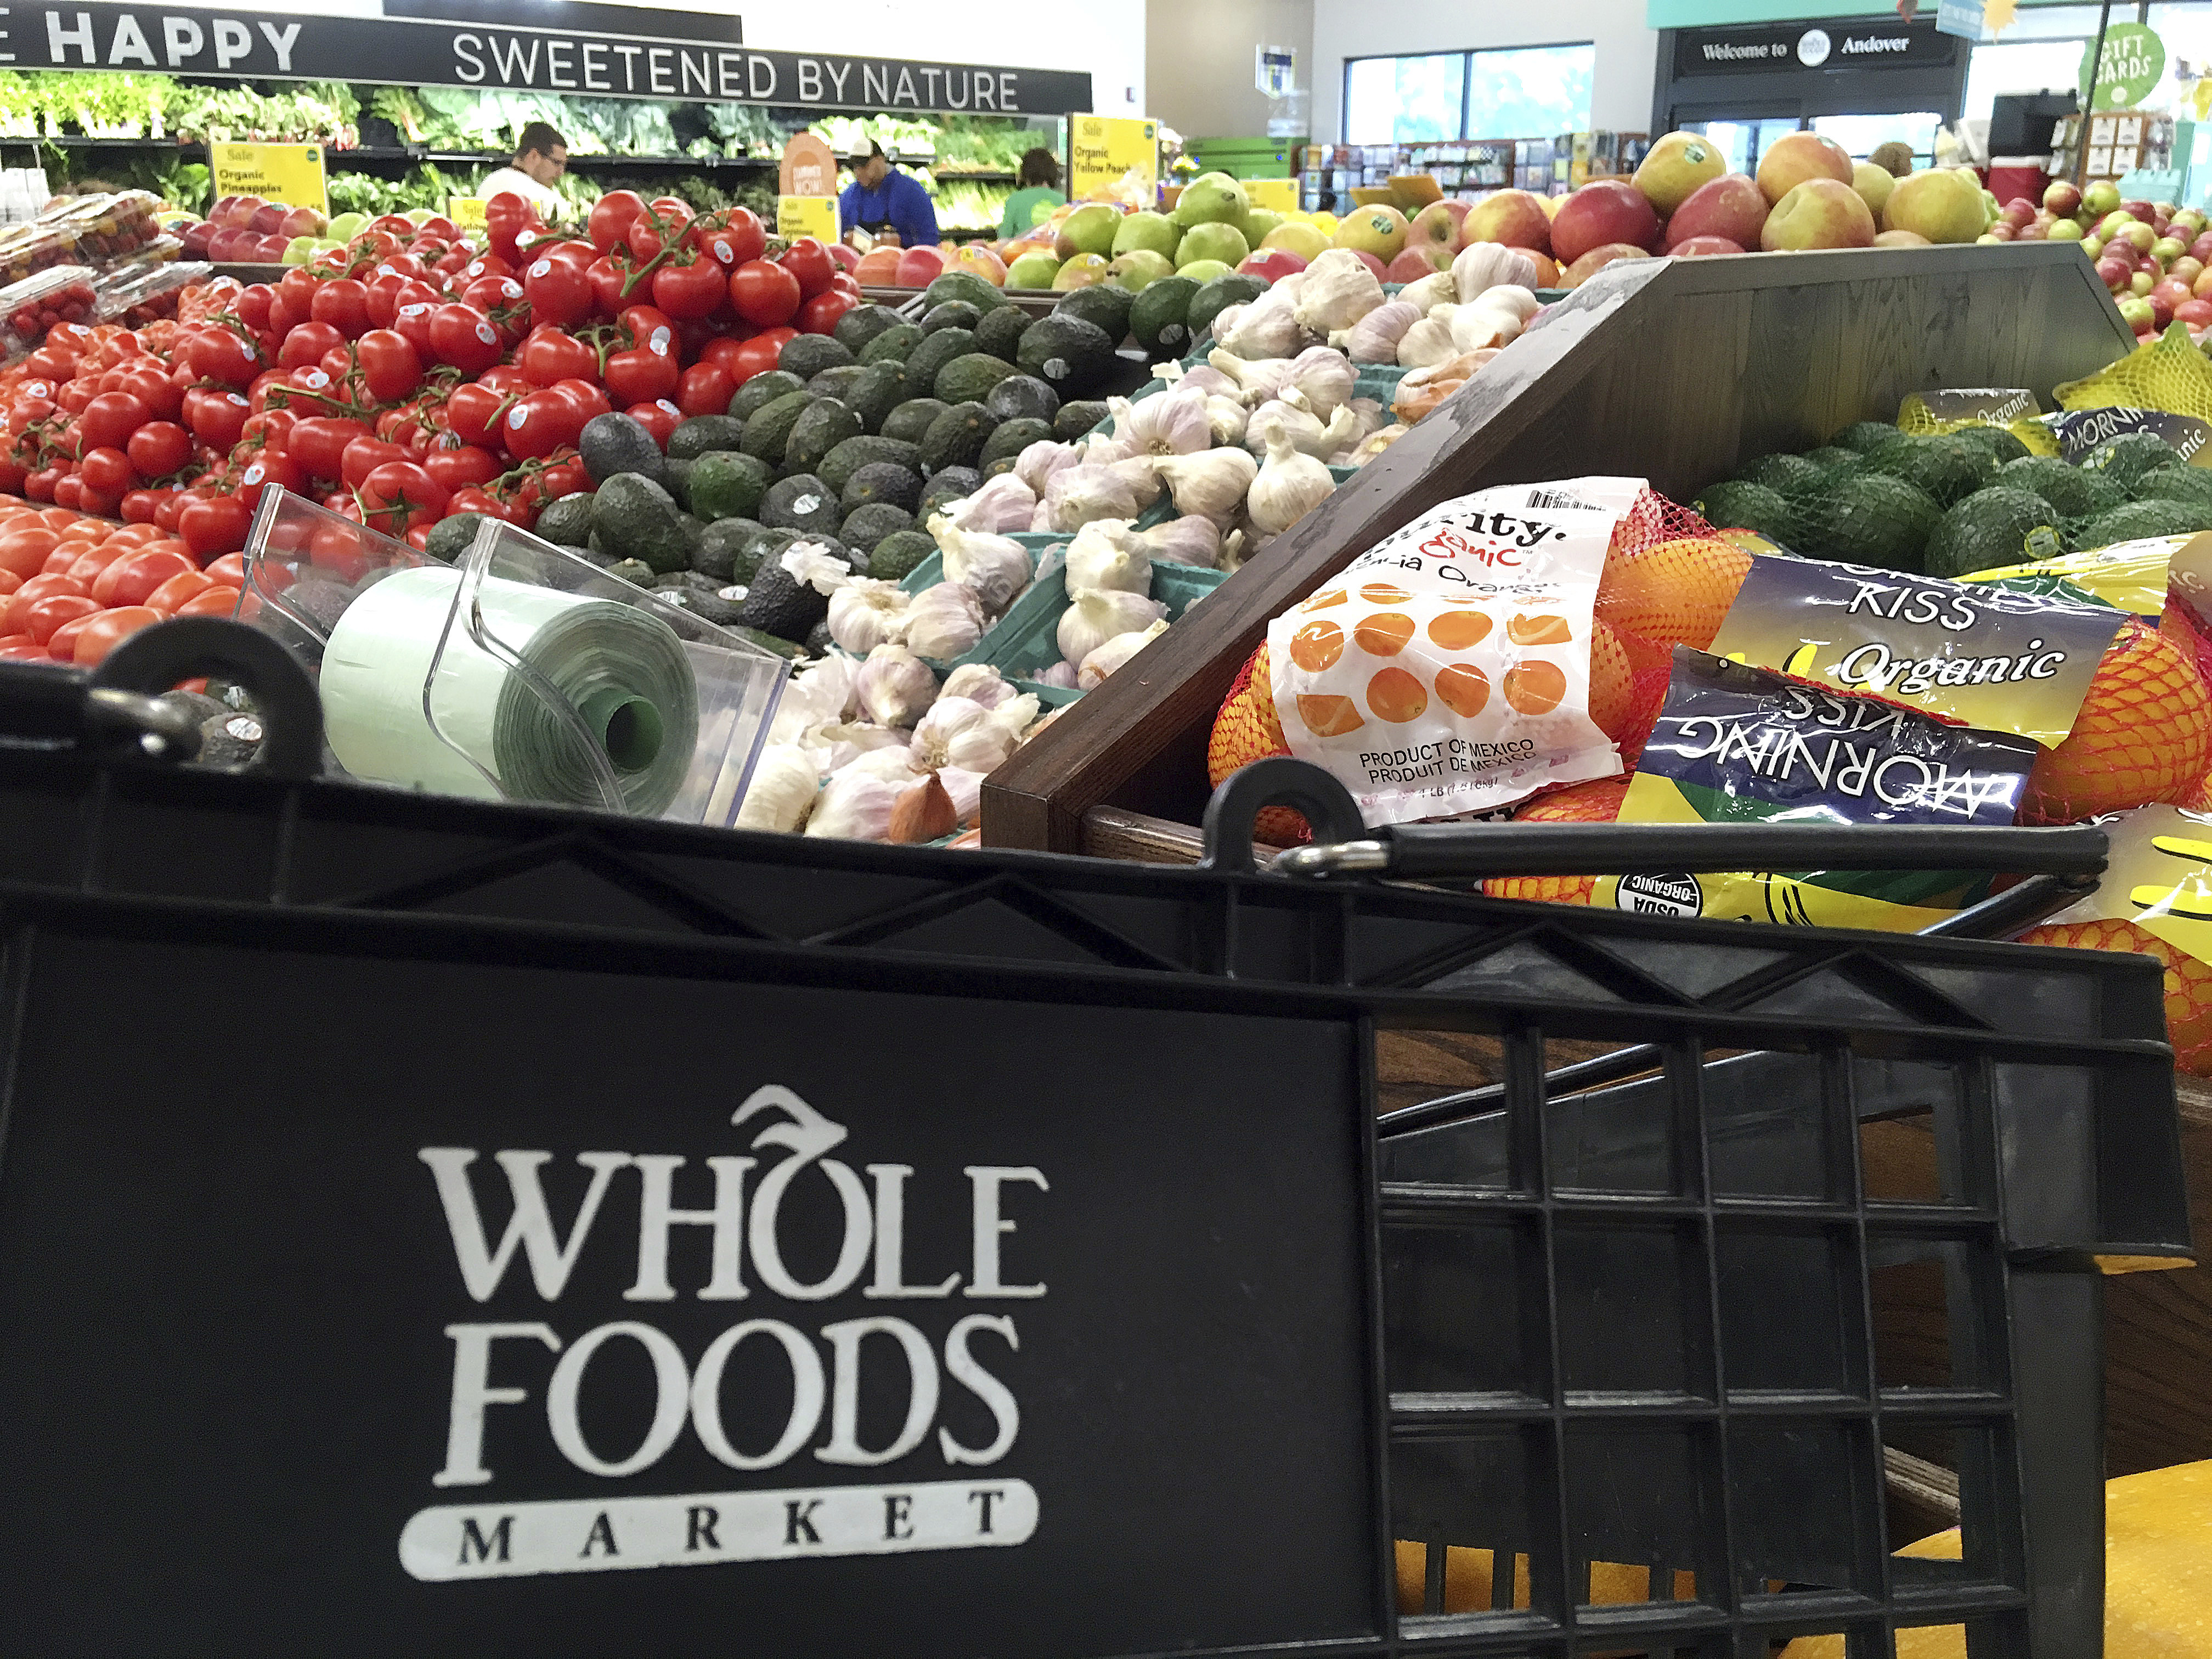 .In this June 5, 2017 photo, produce is displayed at Whole Foods Market in Andover, Mass. Amazon is acquiring Whole Foods for $13.7 billion, or $42 a share. (AP Photo/Elise Amendola)